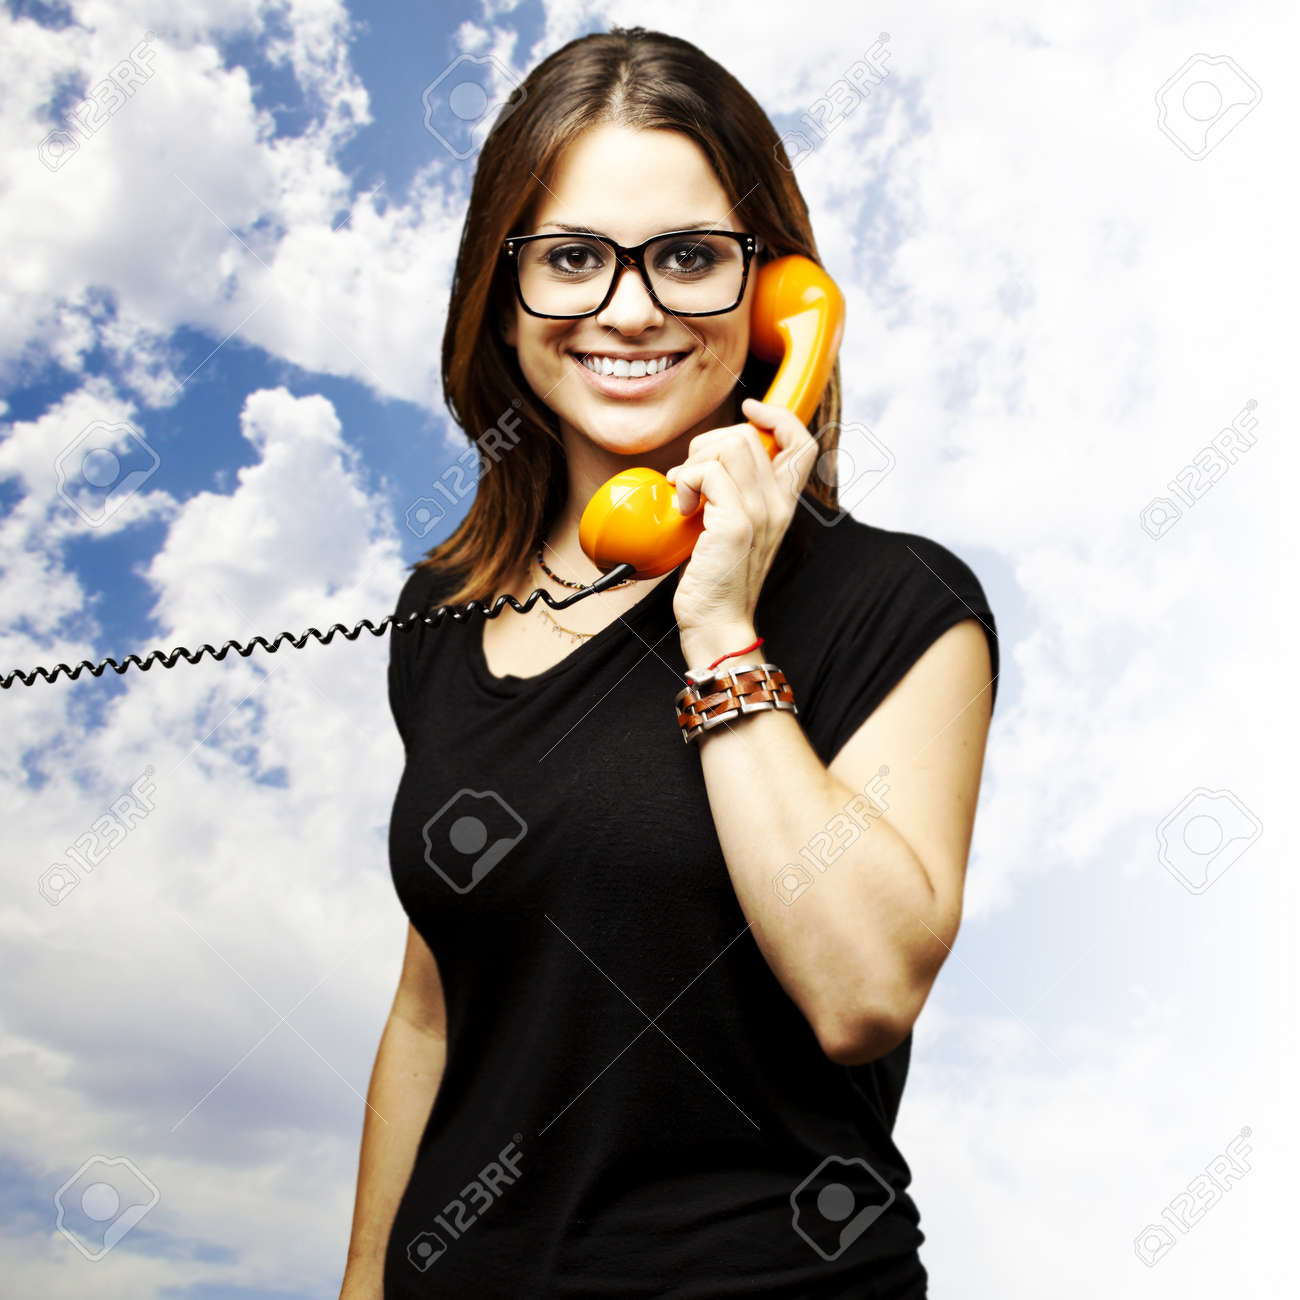 portrait of young woman talking using a vintage telephone against a blue sky background Stock Photo - 12656184